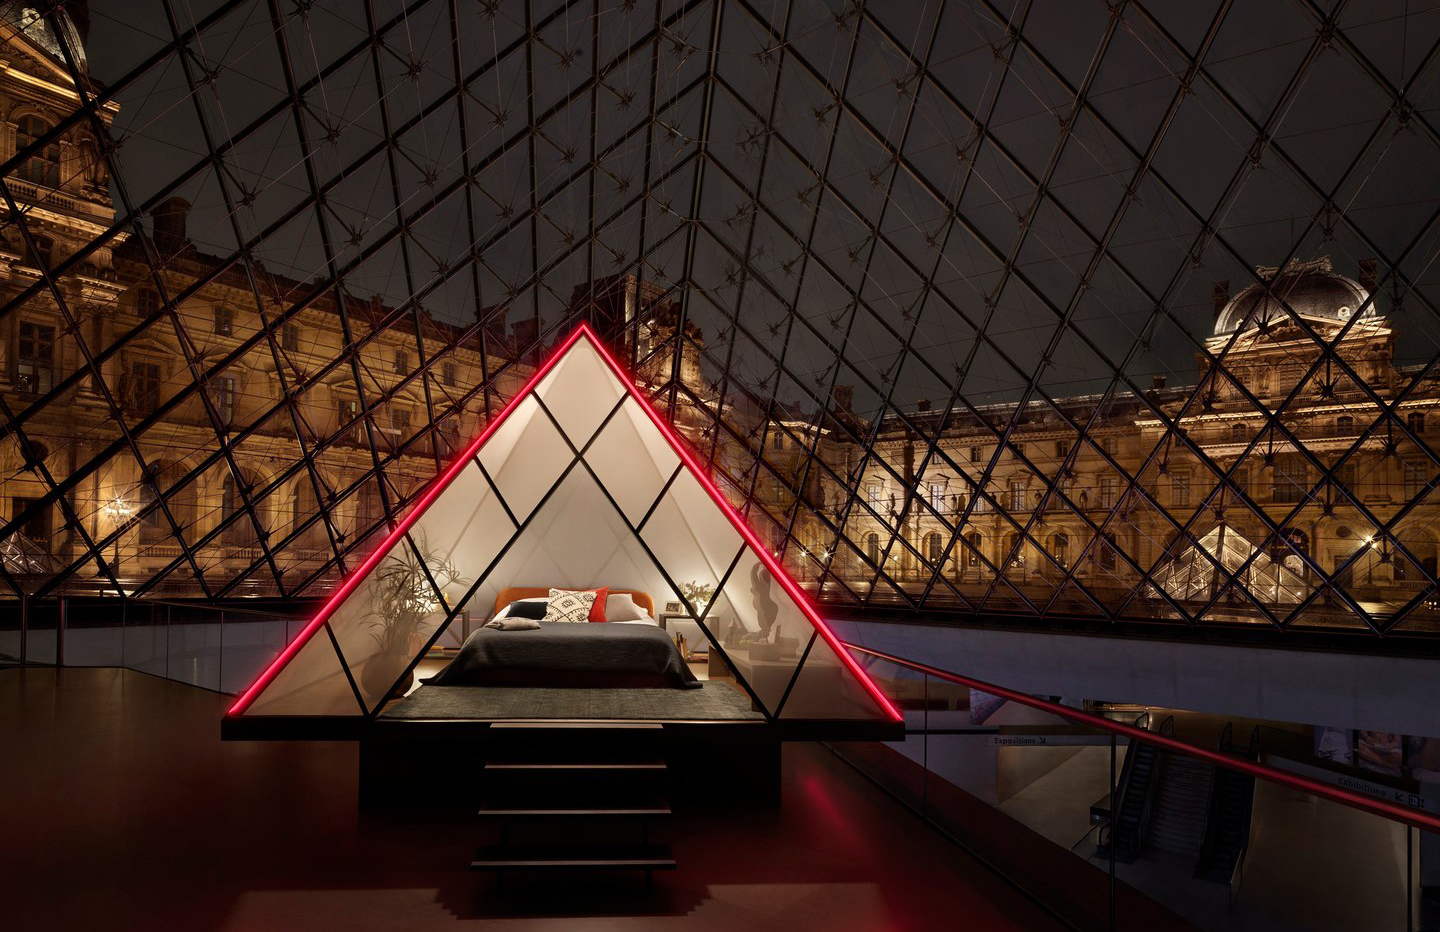 Spend the night in the Louvre courtesy of Airbnb